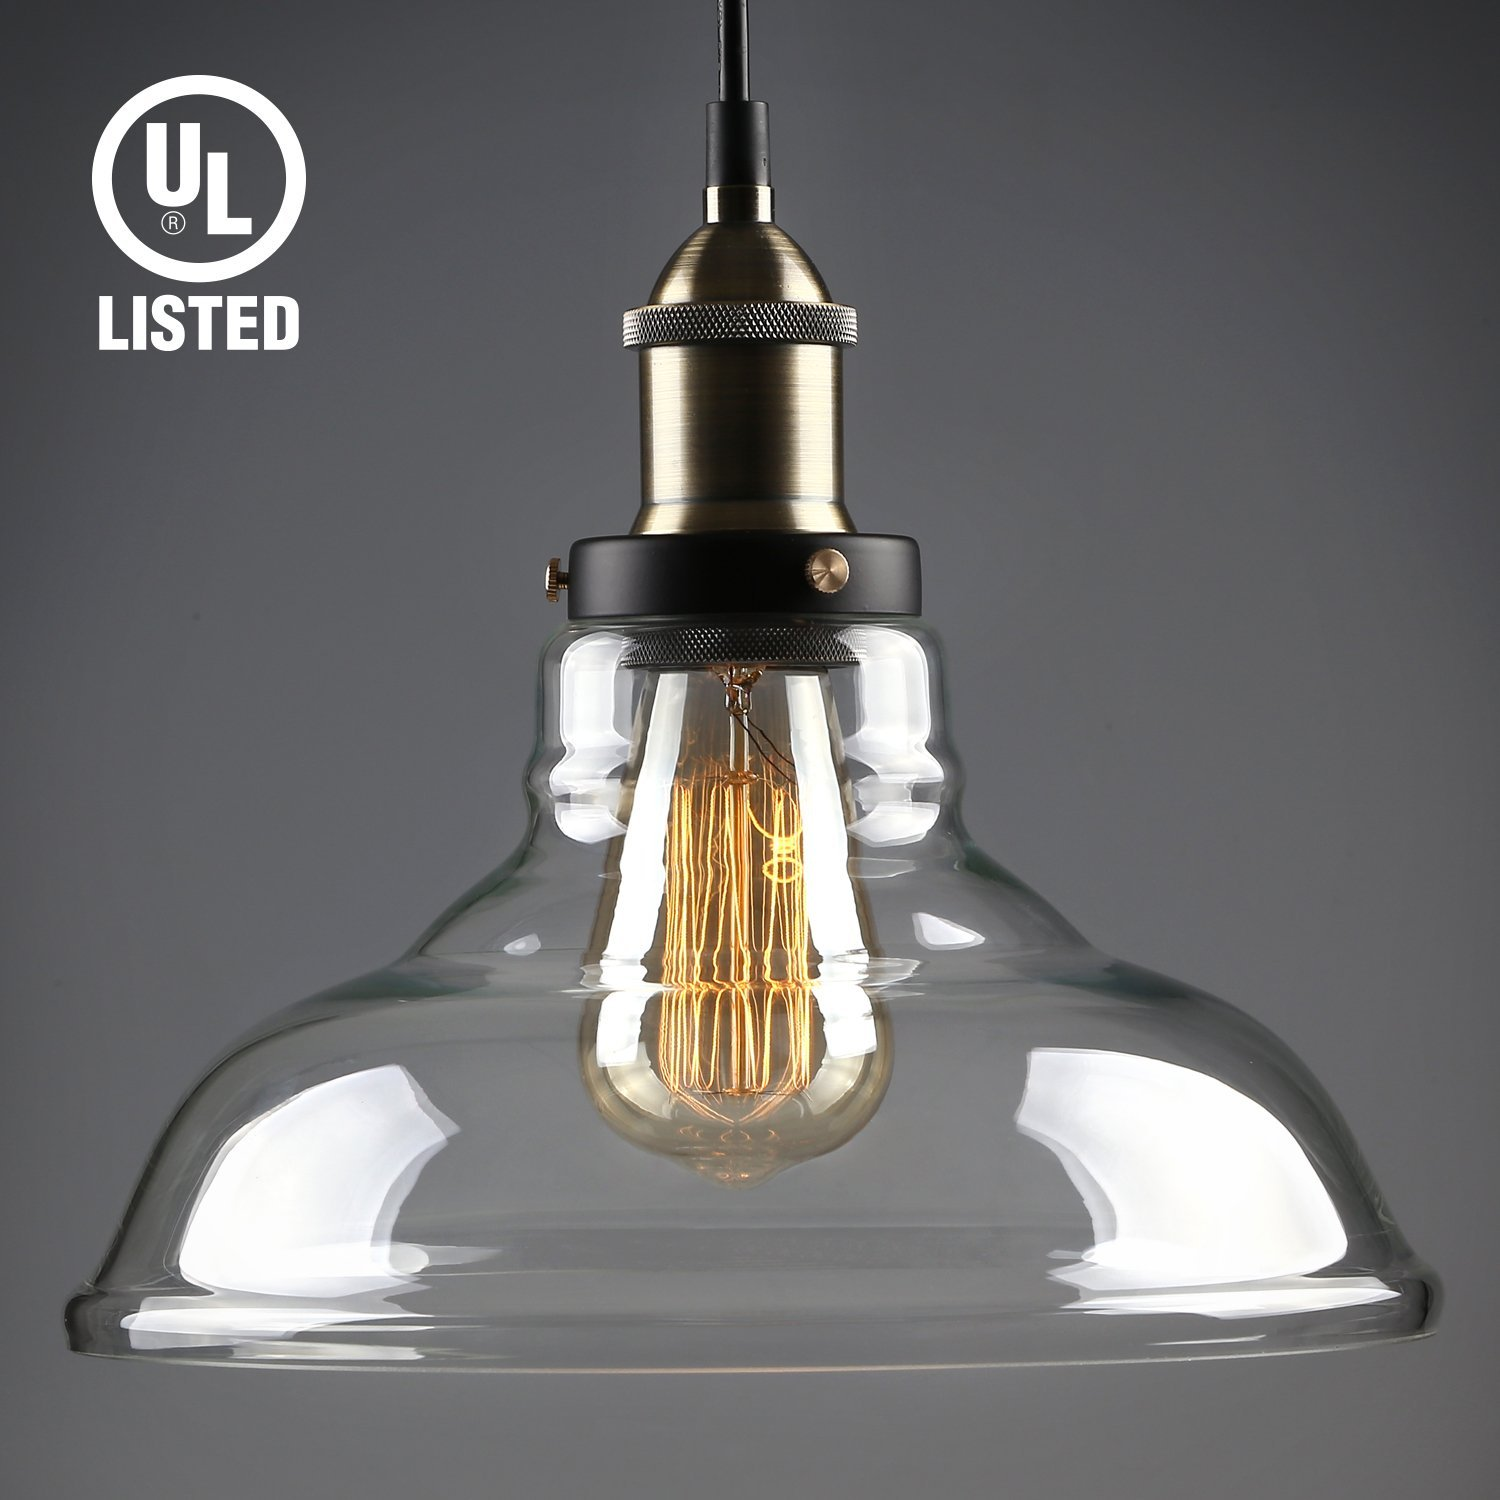 Pendant Lighting Leonlite Industrial Glass Pendant Lighting For Kitchen Led Ceiling Lights